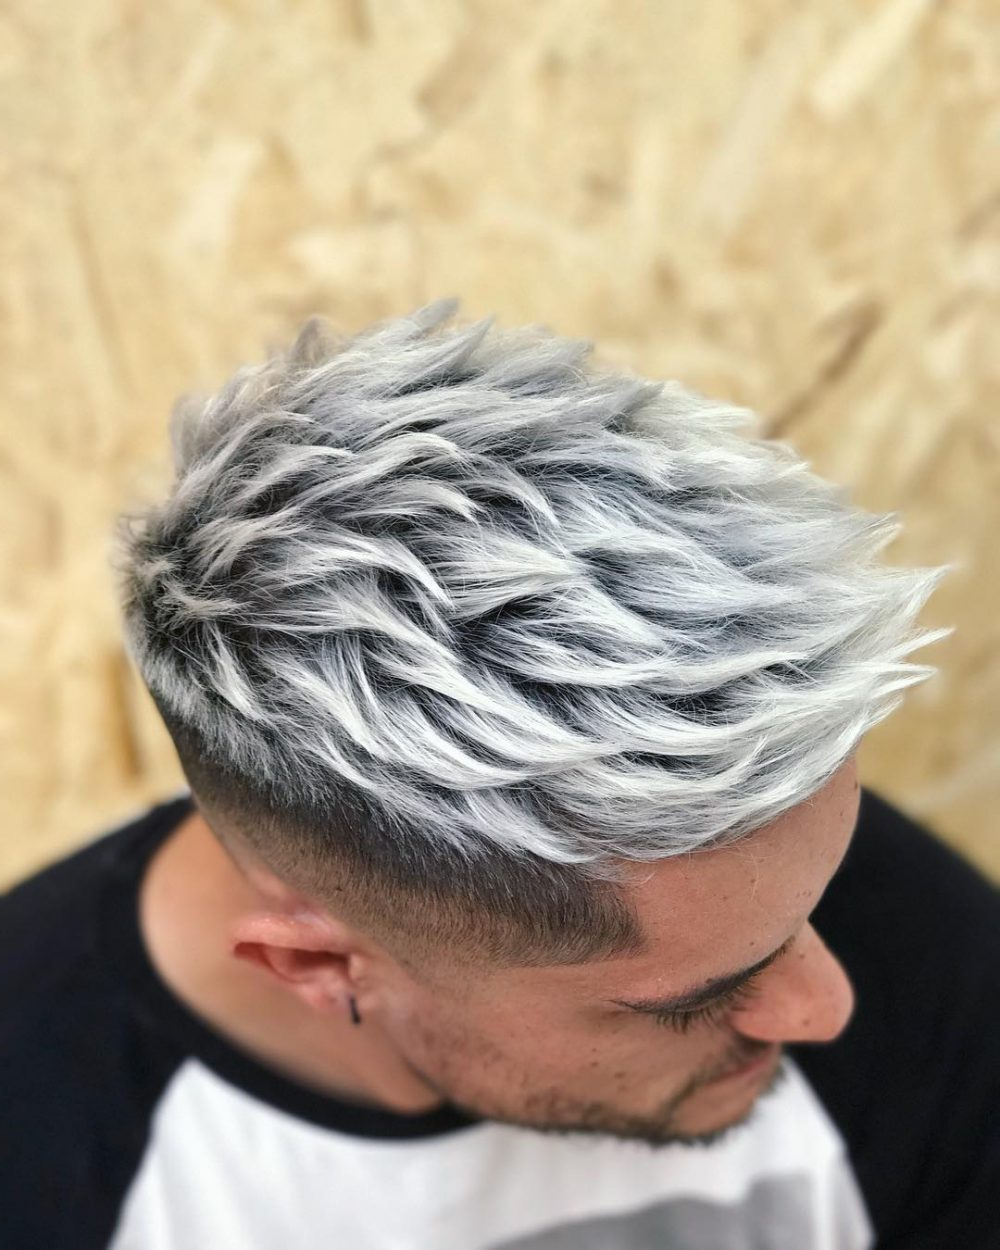 29 Coolest Men's Hair Color Ideas In 2020 Within Most Recently Released Faux Hawk Fade Haircuts With Purple Highlights (View 3 of 20)